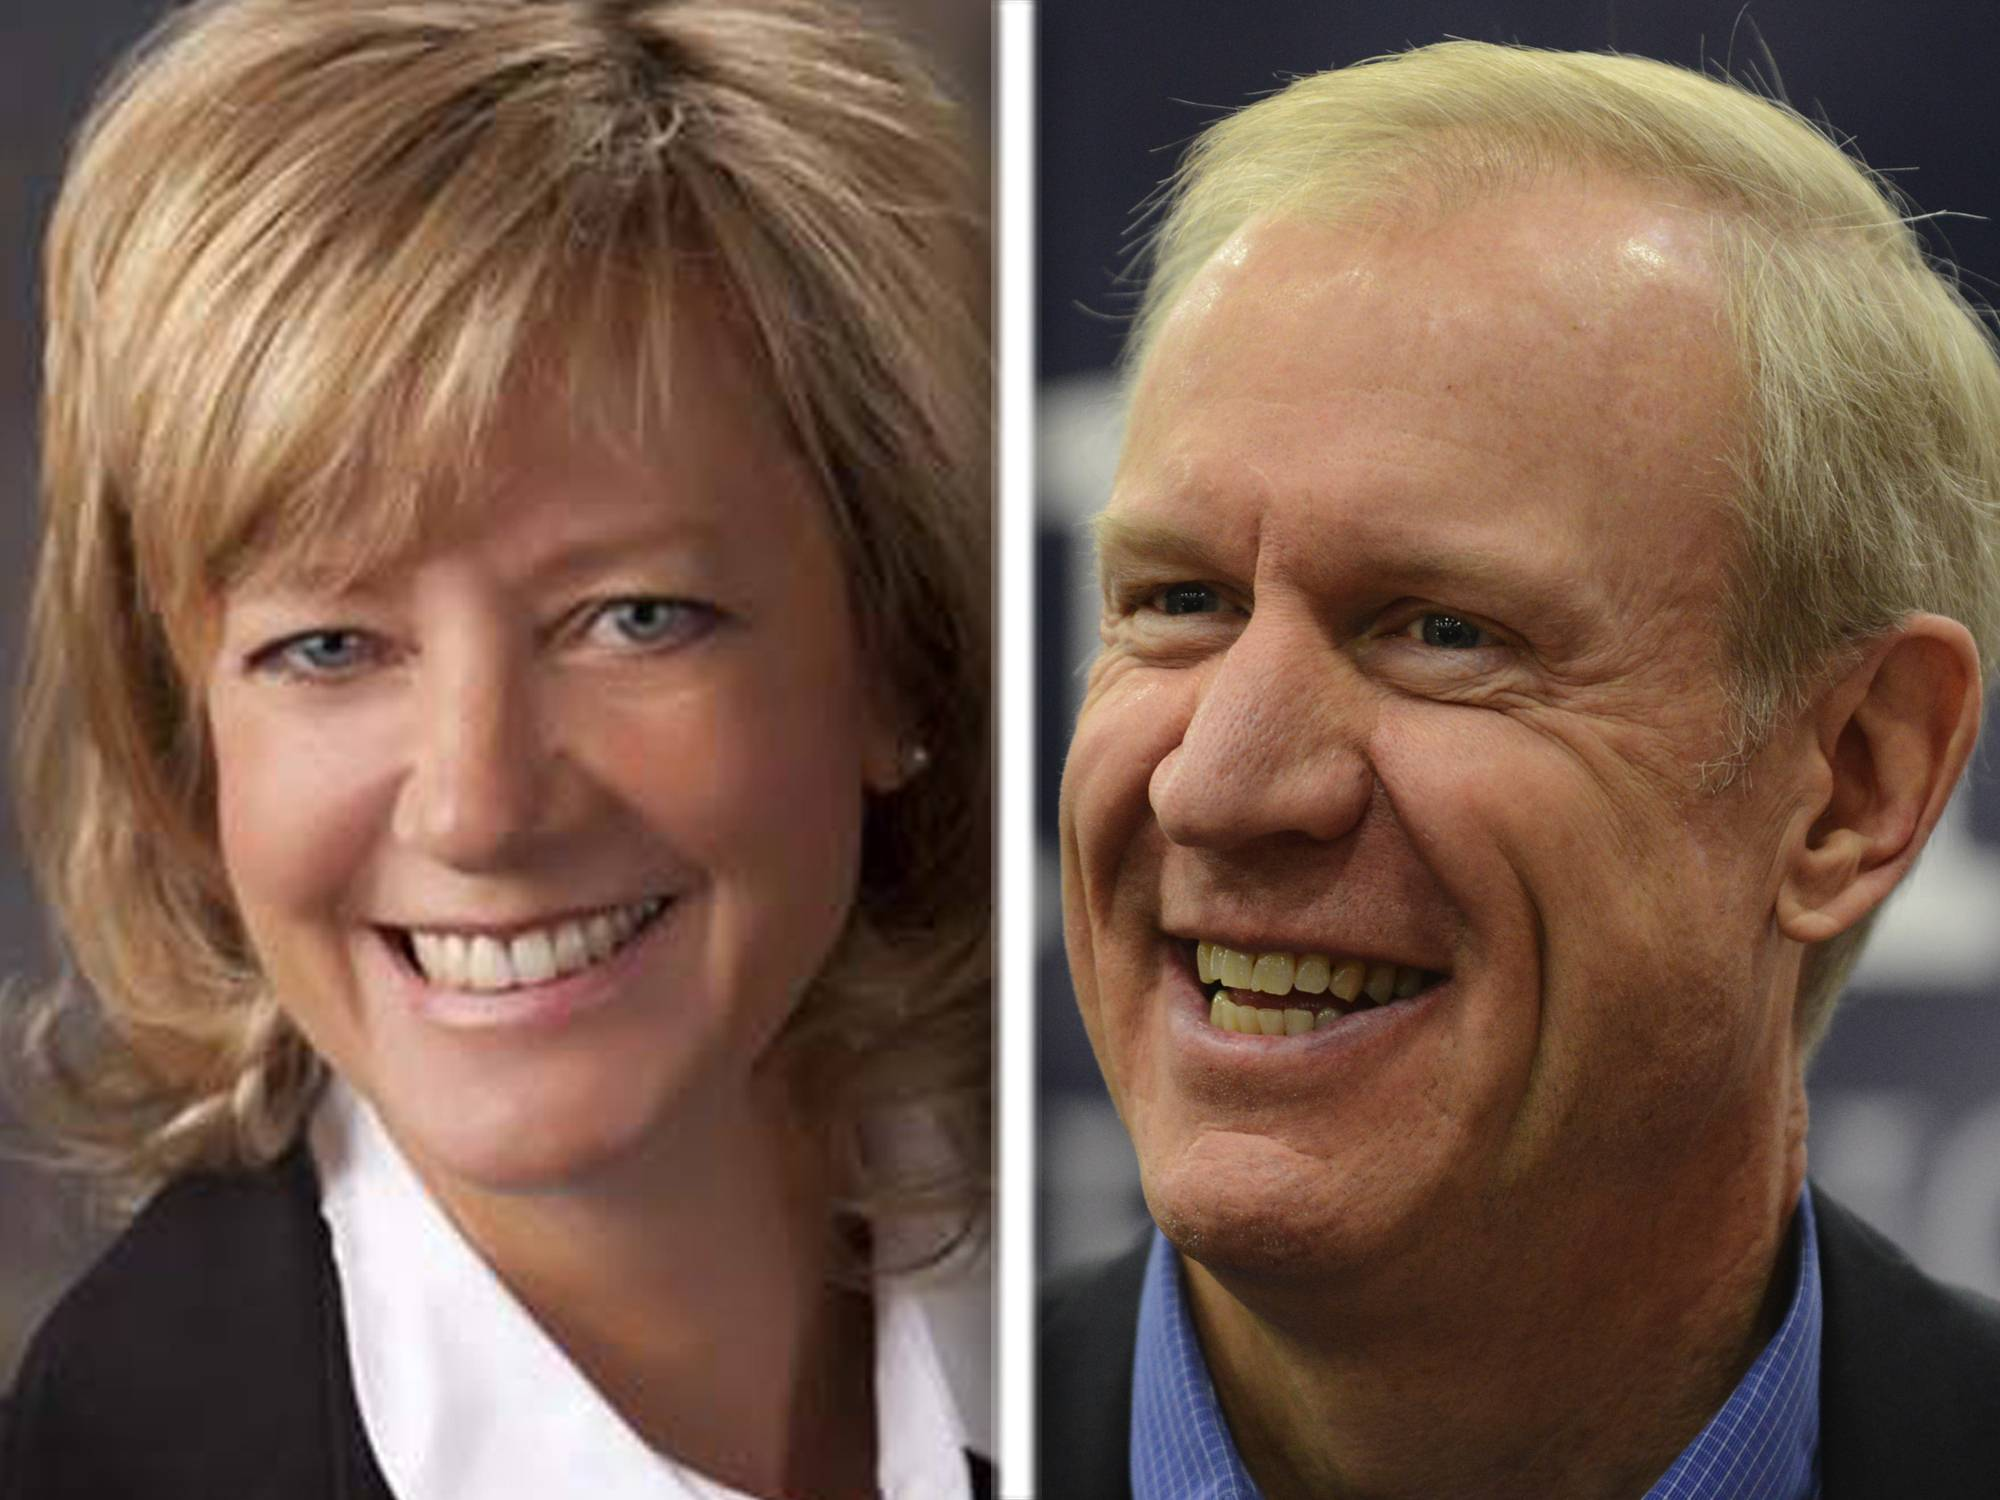 Jeanne Ives , left, and Bruce Rauner, right, are  Republican candidates for   Illinois Governor